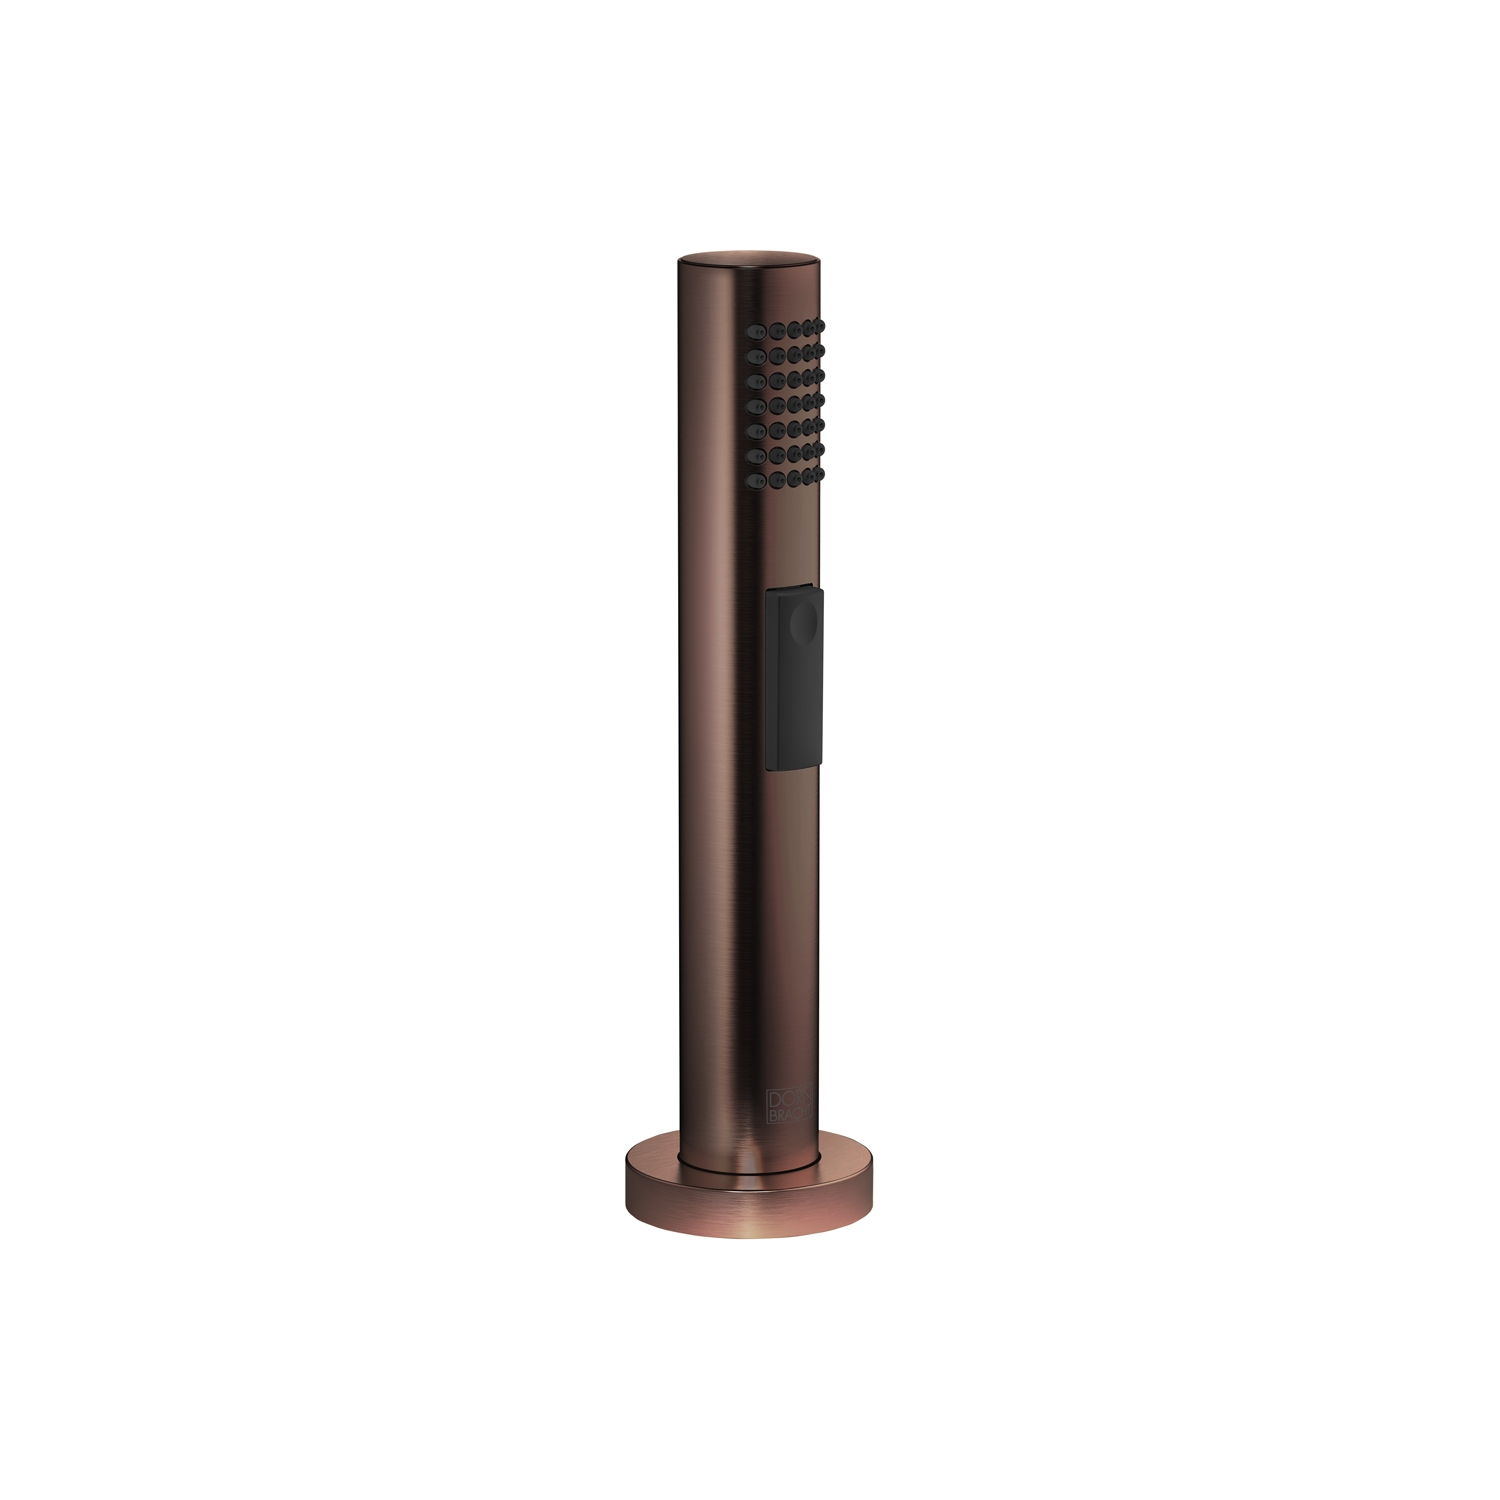 Dornbracht 27721970-17 Round Universal Side Spray Set - Dark Bronze Matte